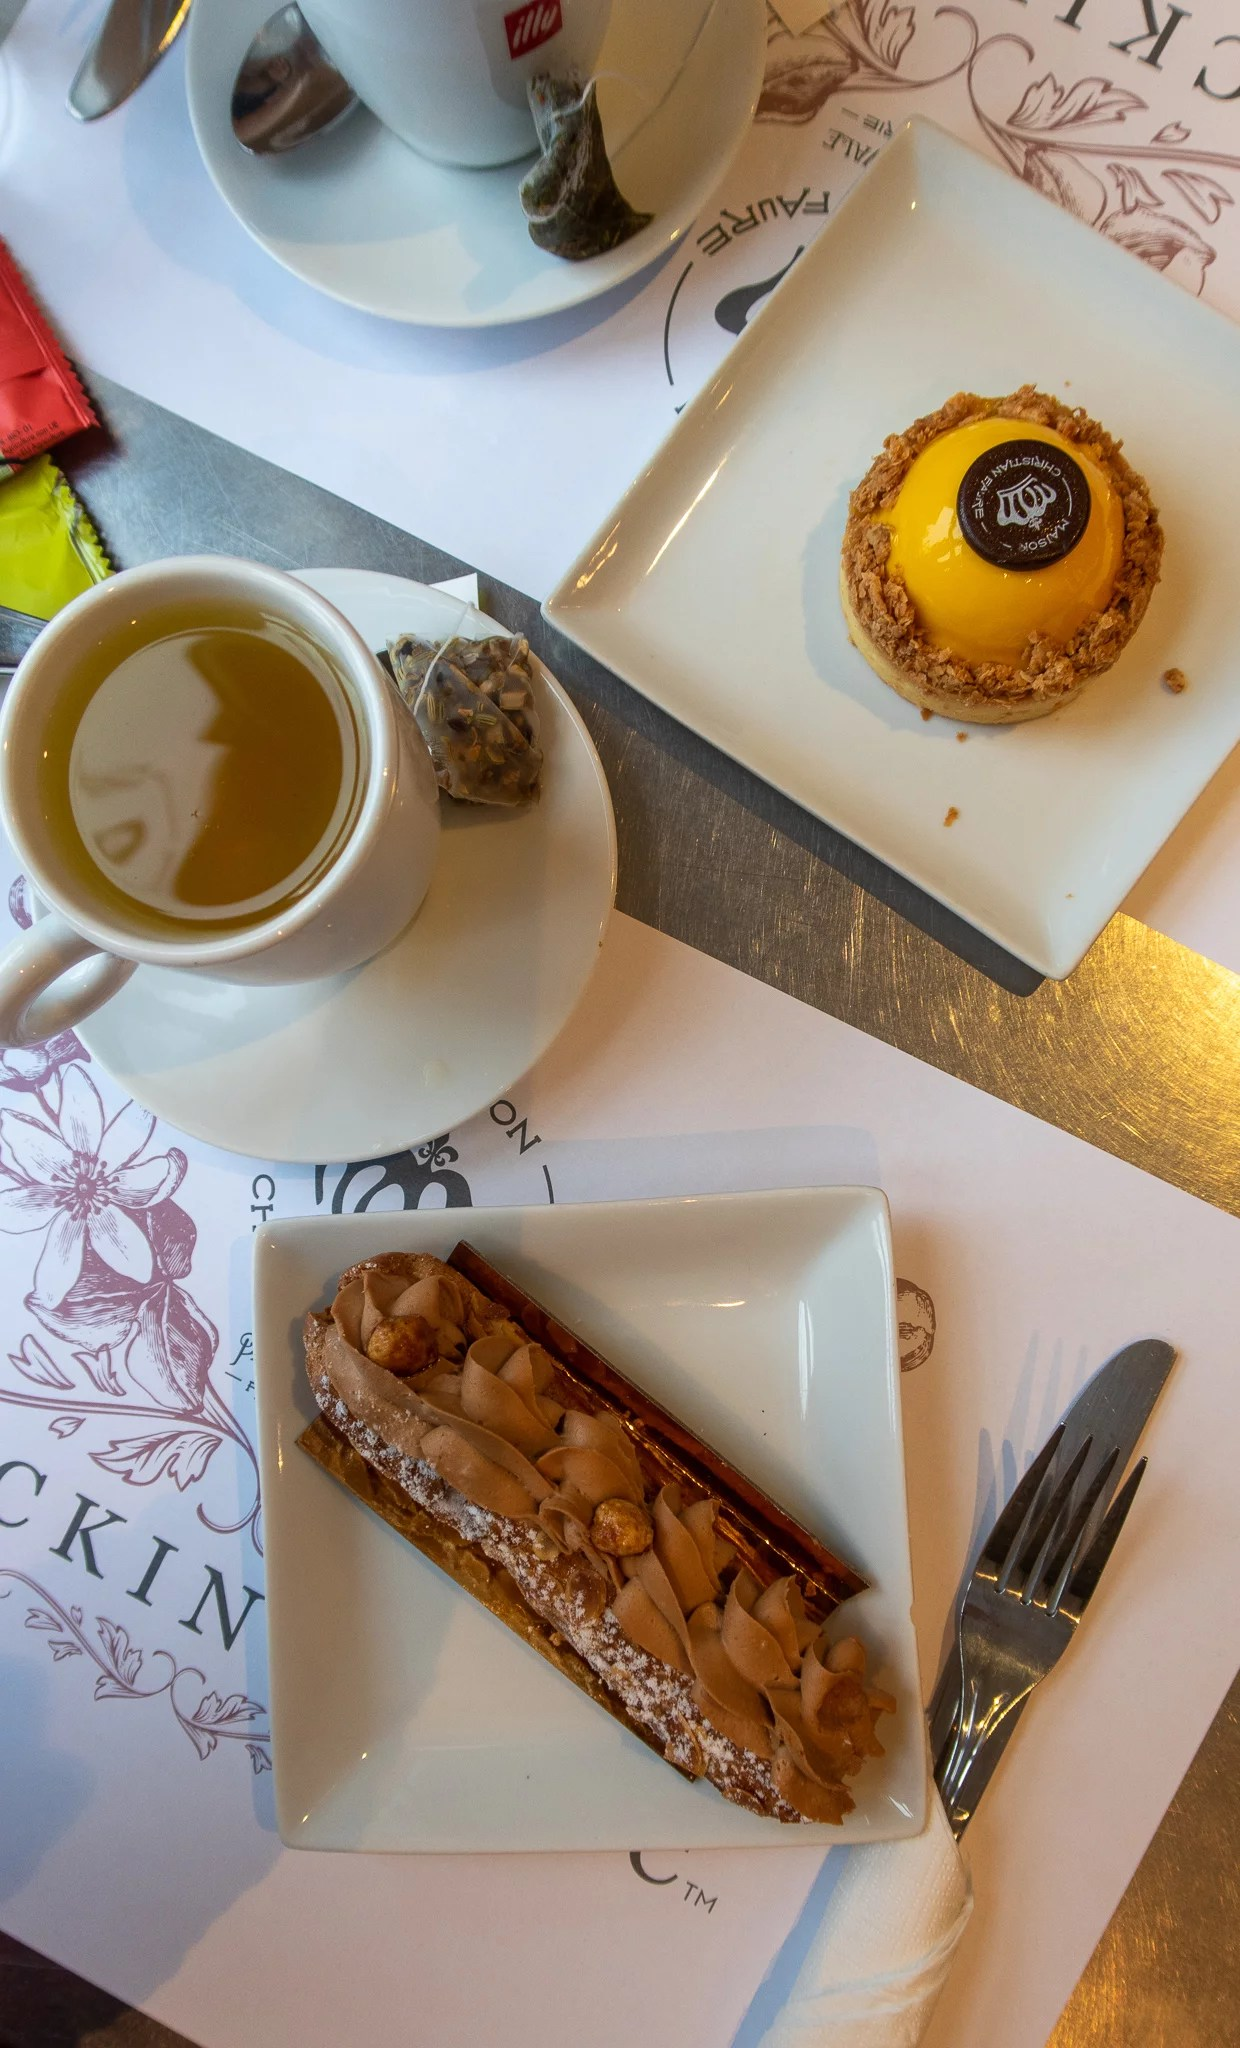 Patisserie from Maison Christian Faure